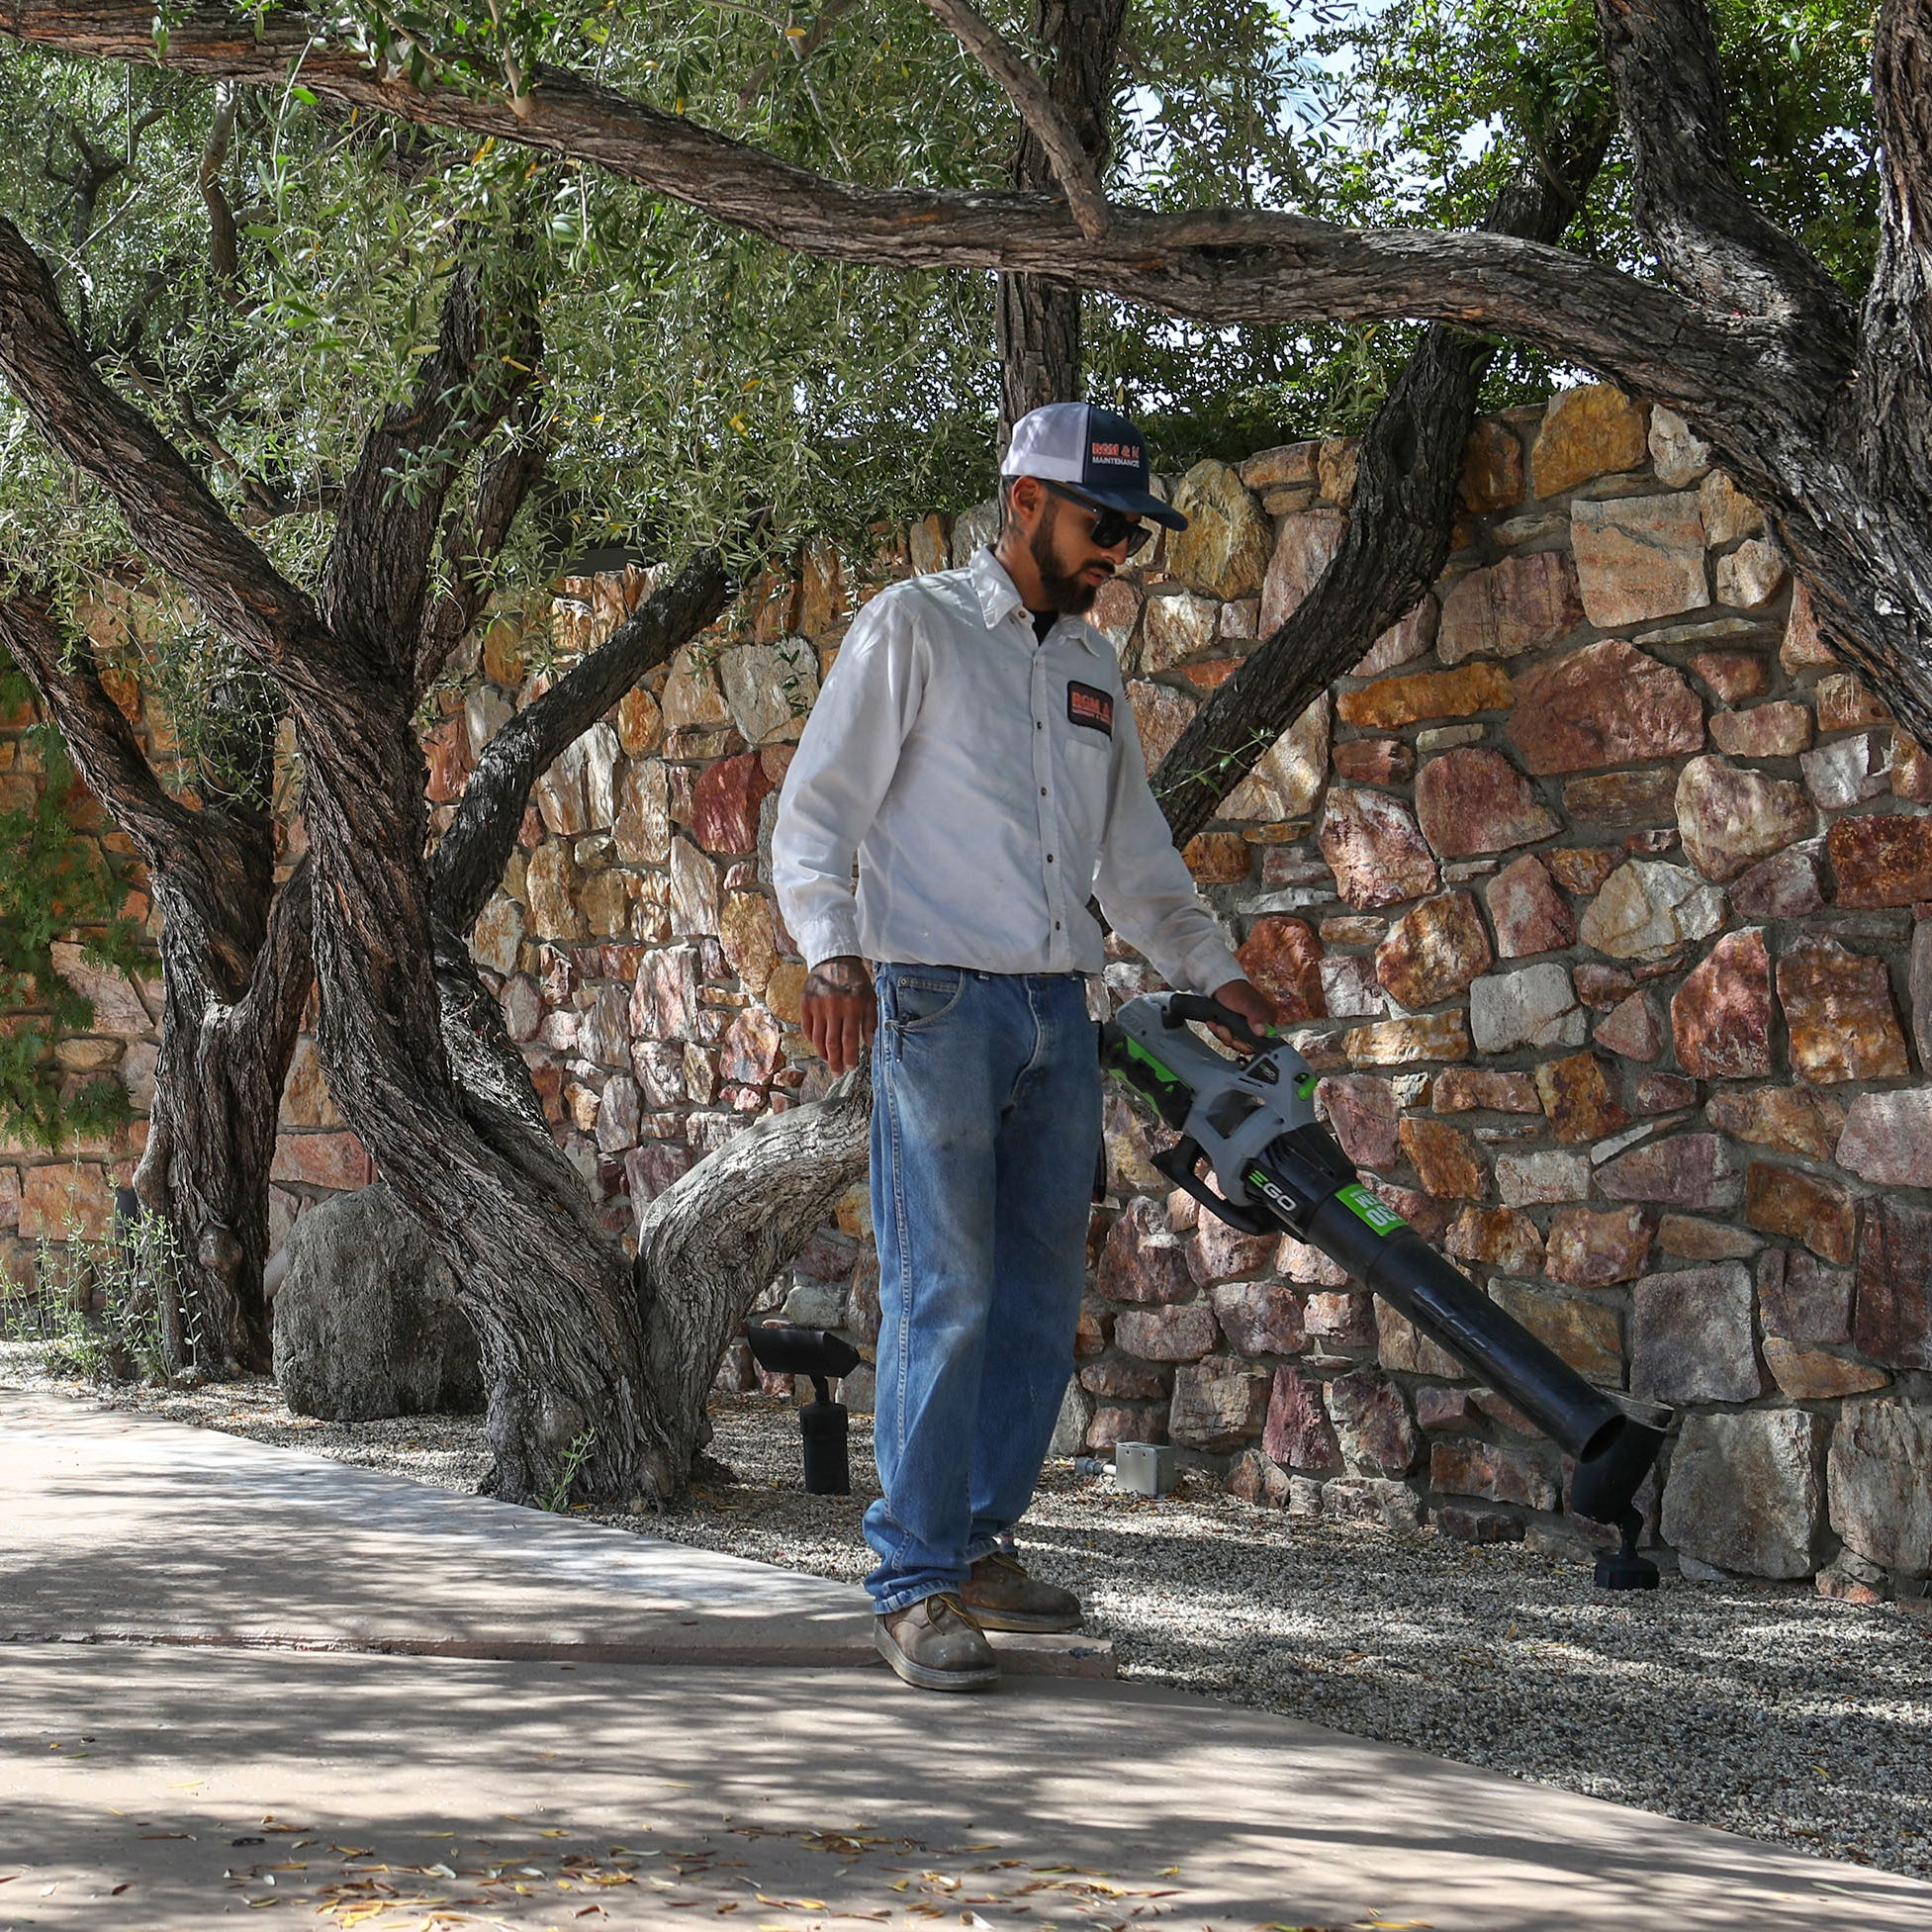 Palm Springs' gas leaf blower ban to begin, but Latino landscapers say they were left out of process